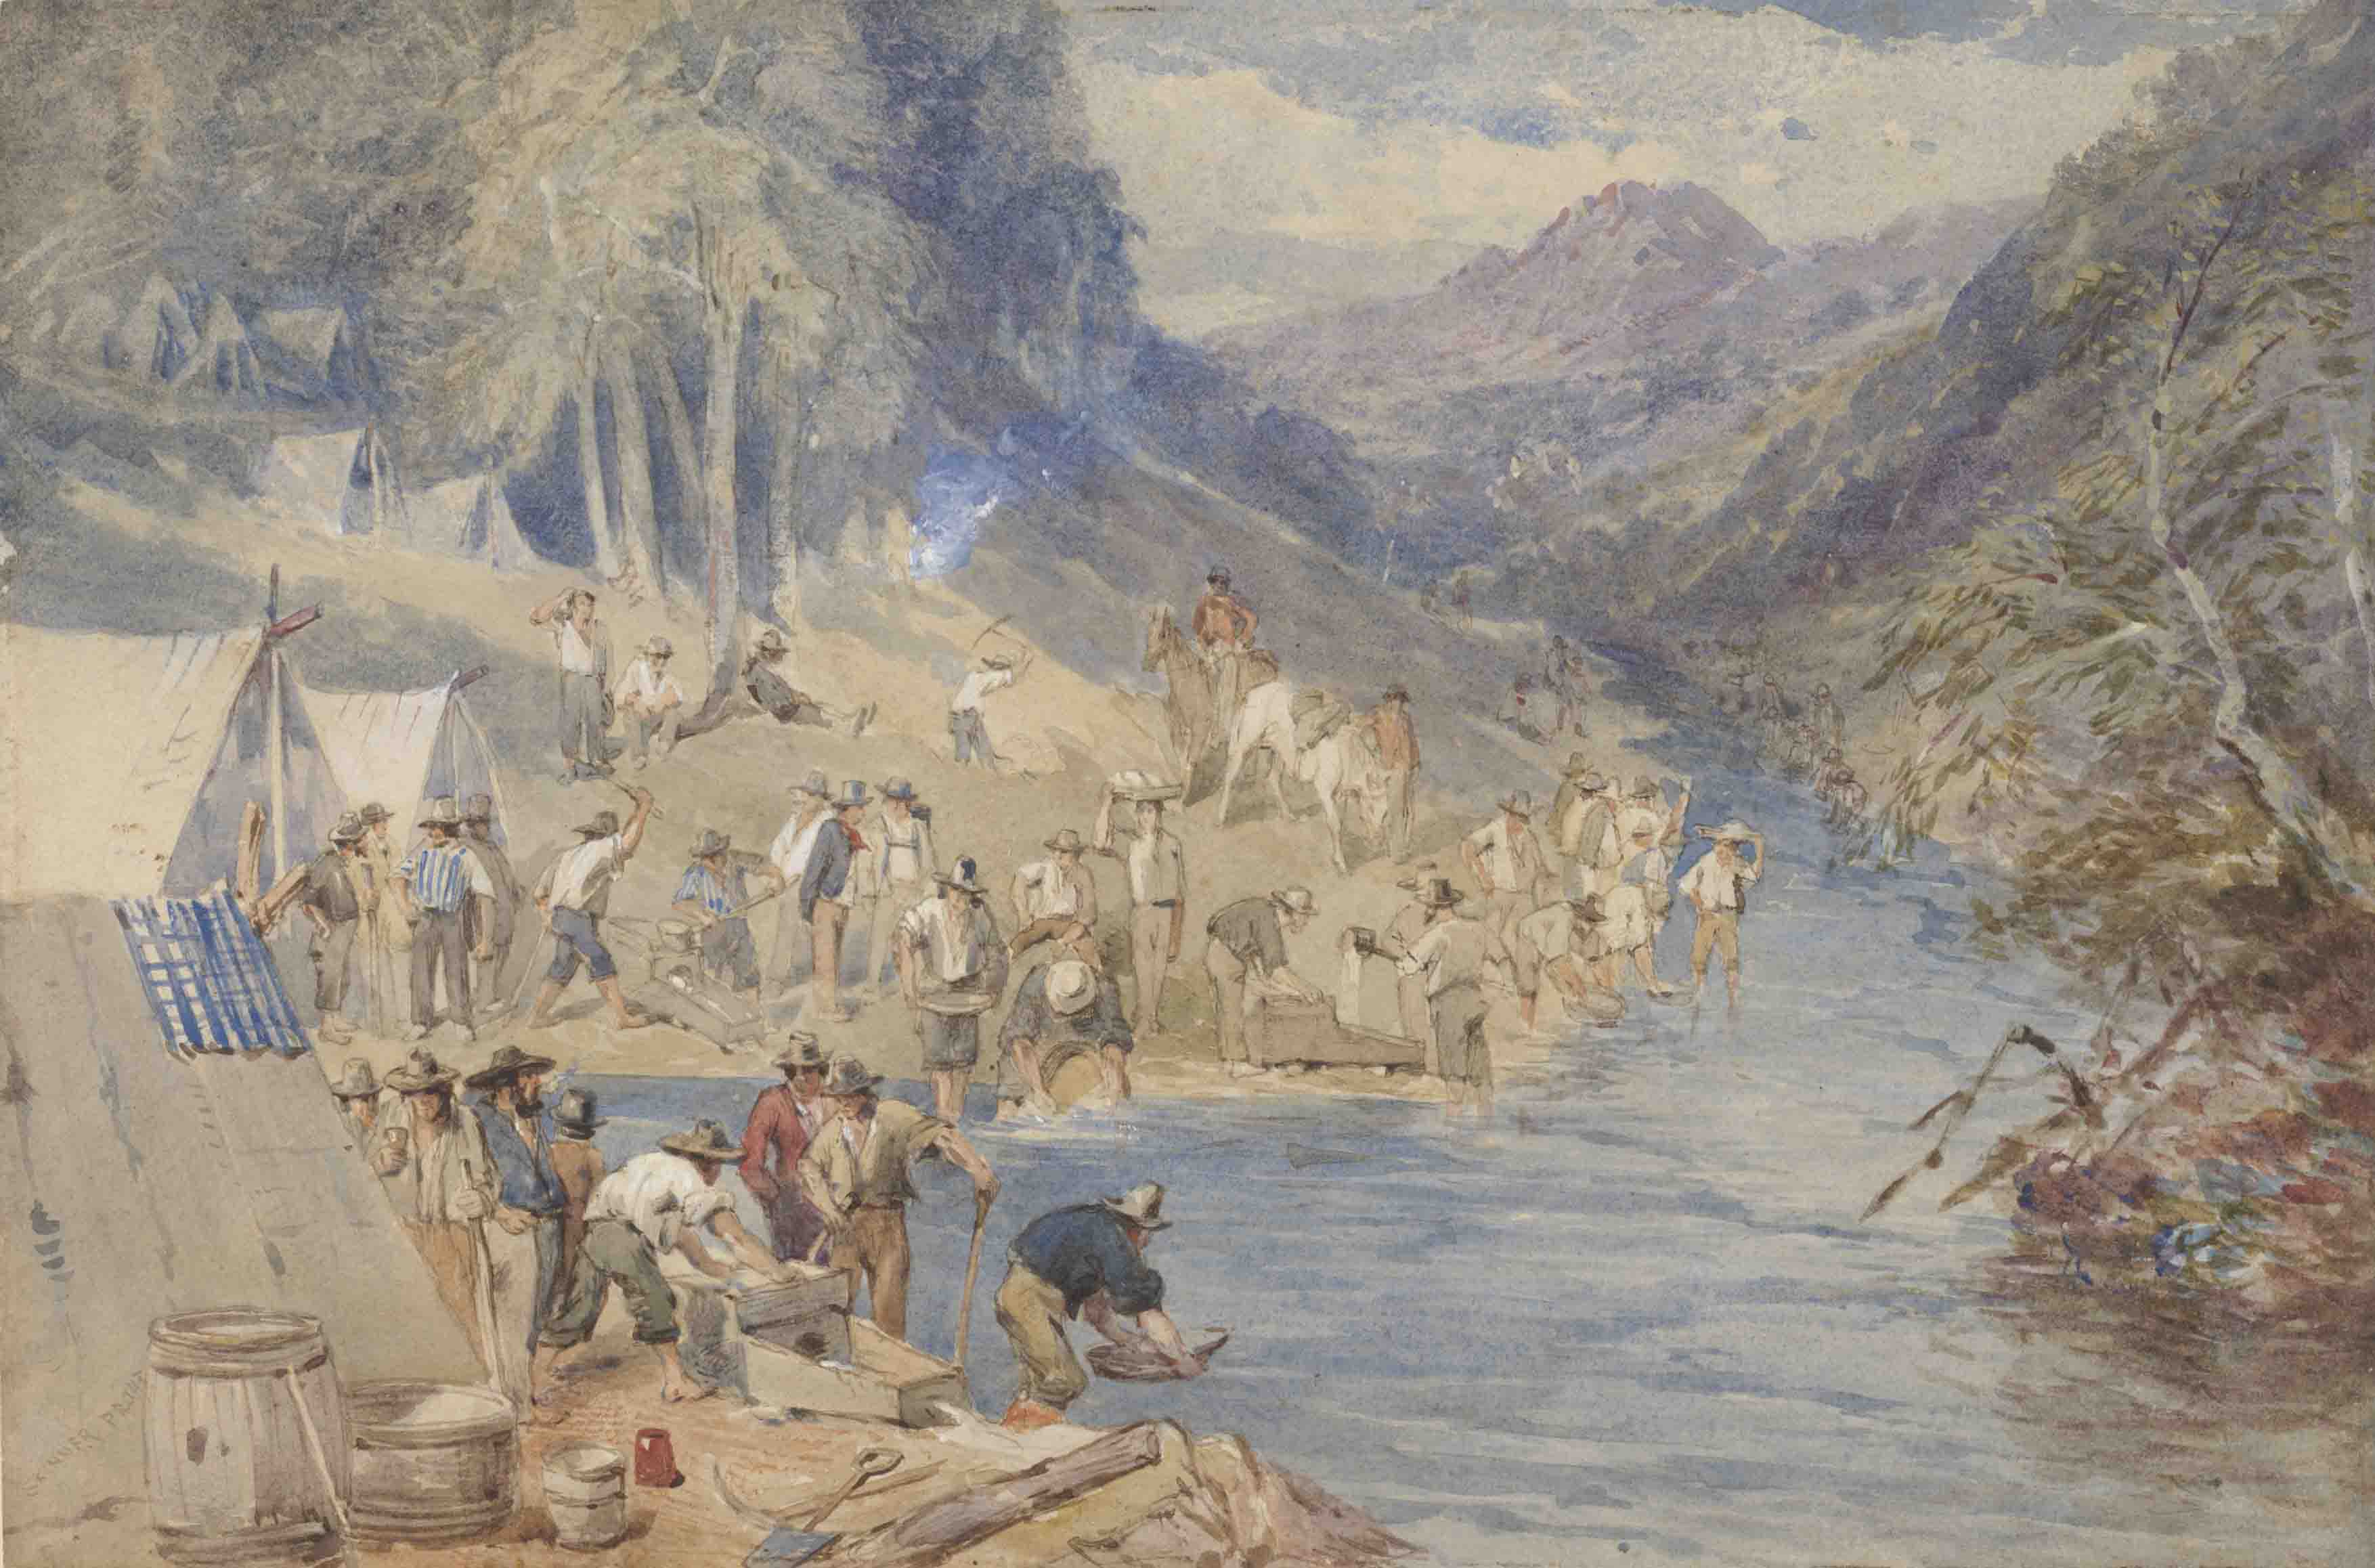 Alluvial gold washing, Mt Alexander goldfields, Victoria by John Skinner Prout, 1852. Courtesy National Library of Australia